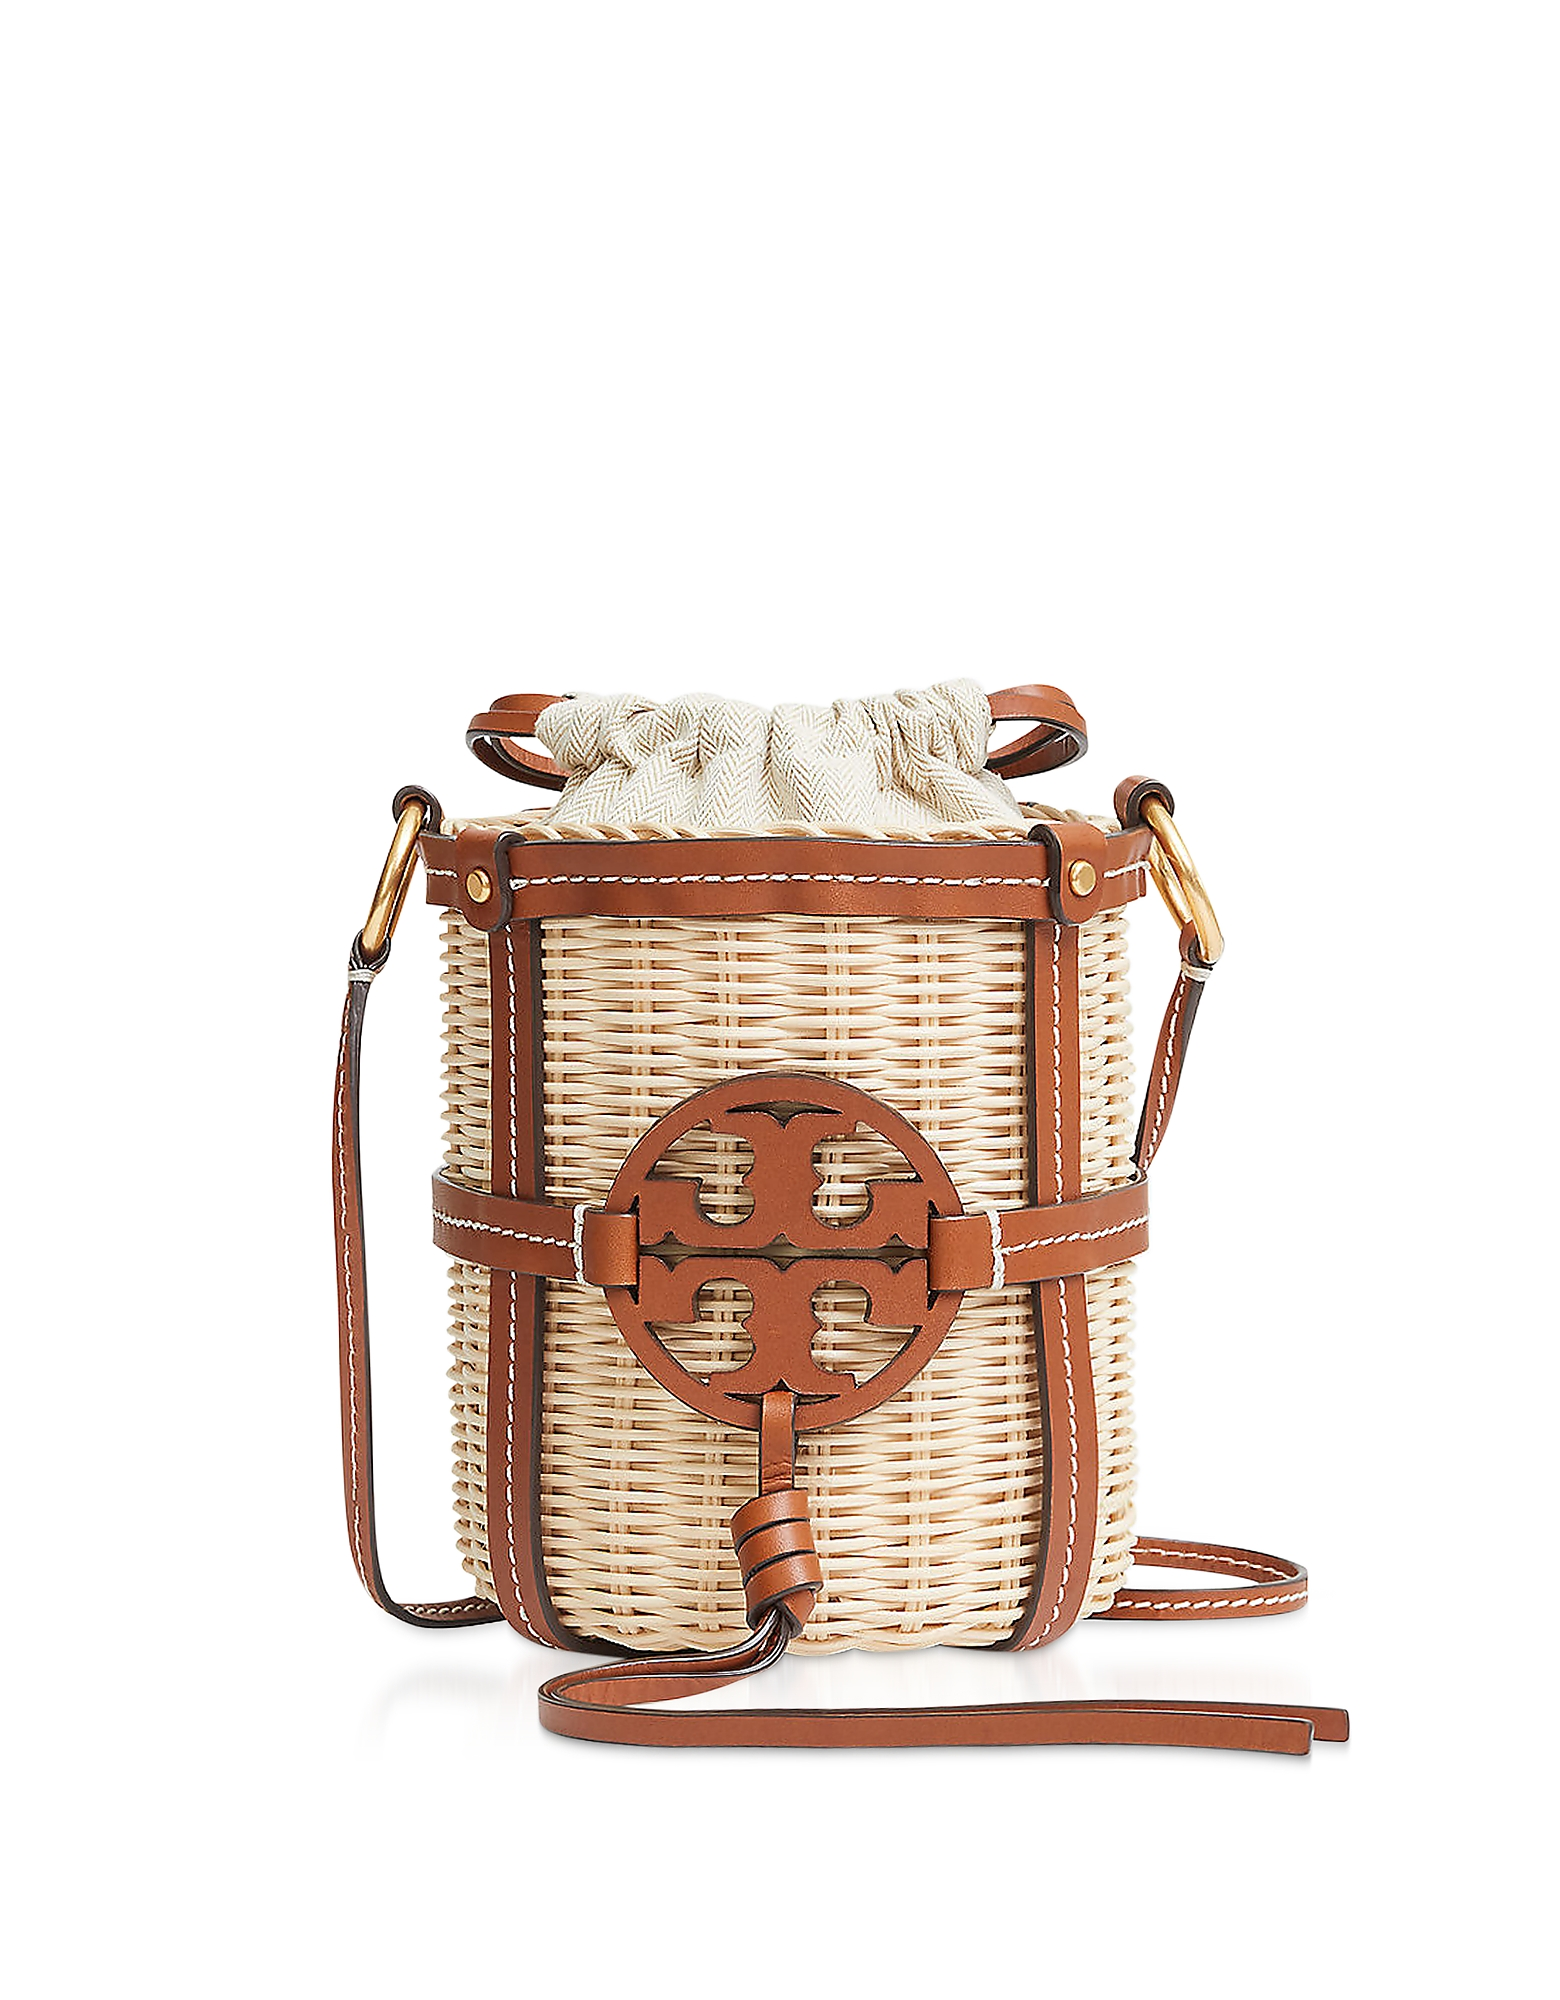 Tory Burch Designer Handbags, Miller Wicker Bucket Bag